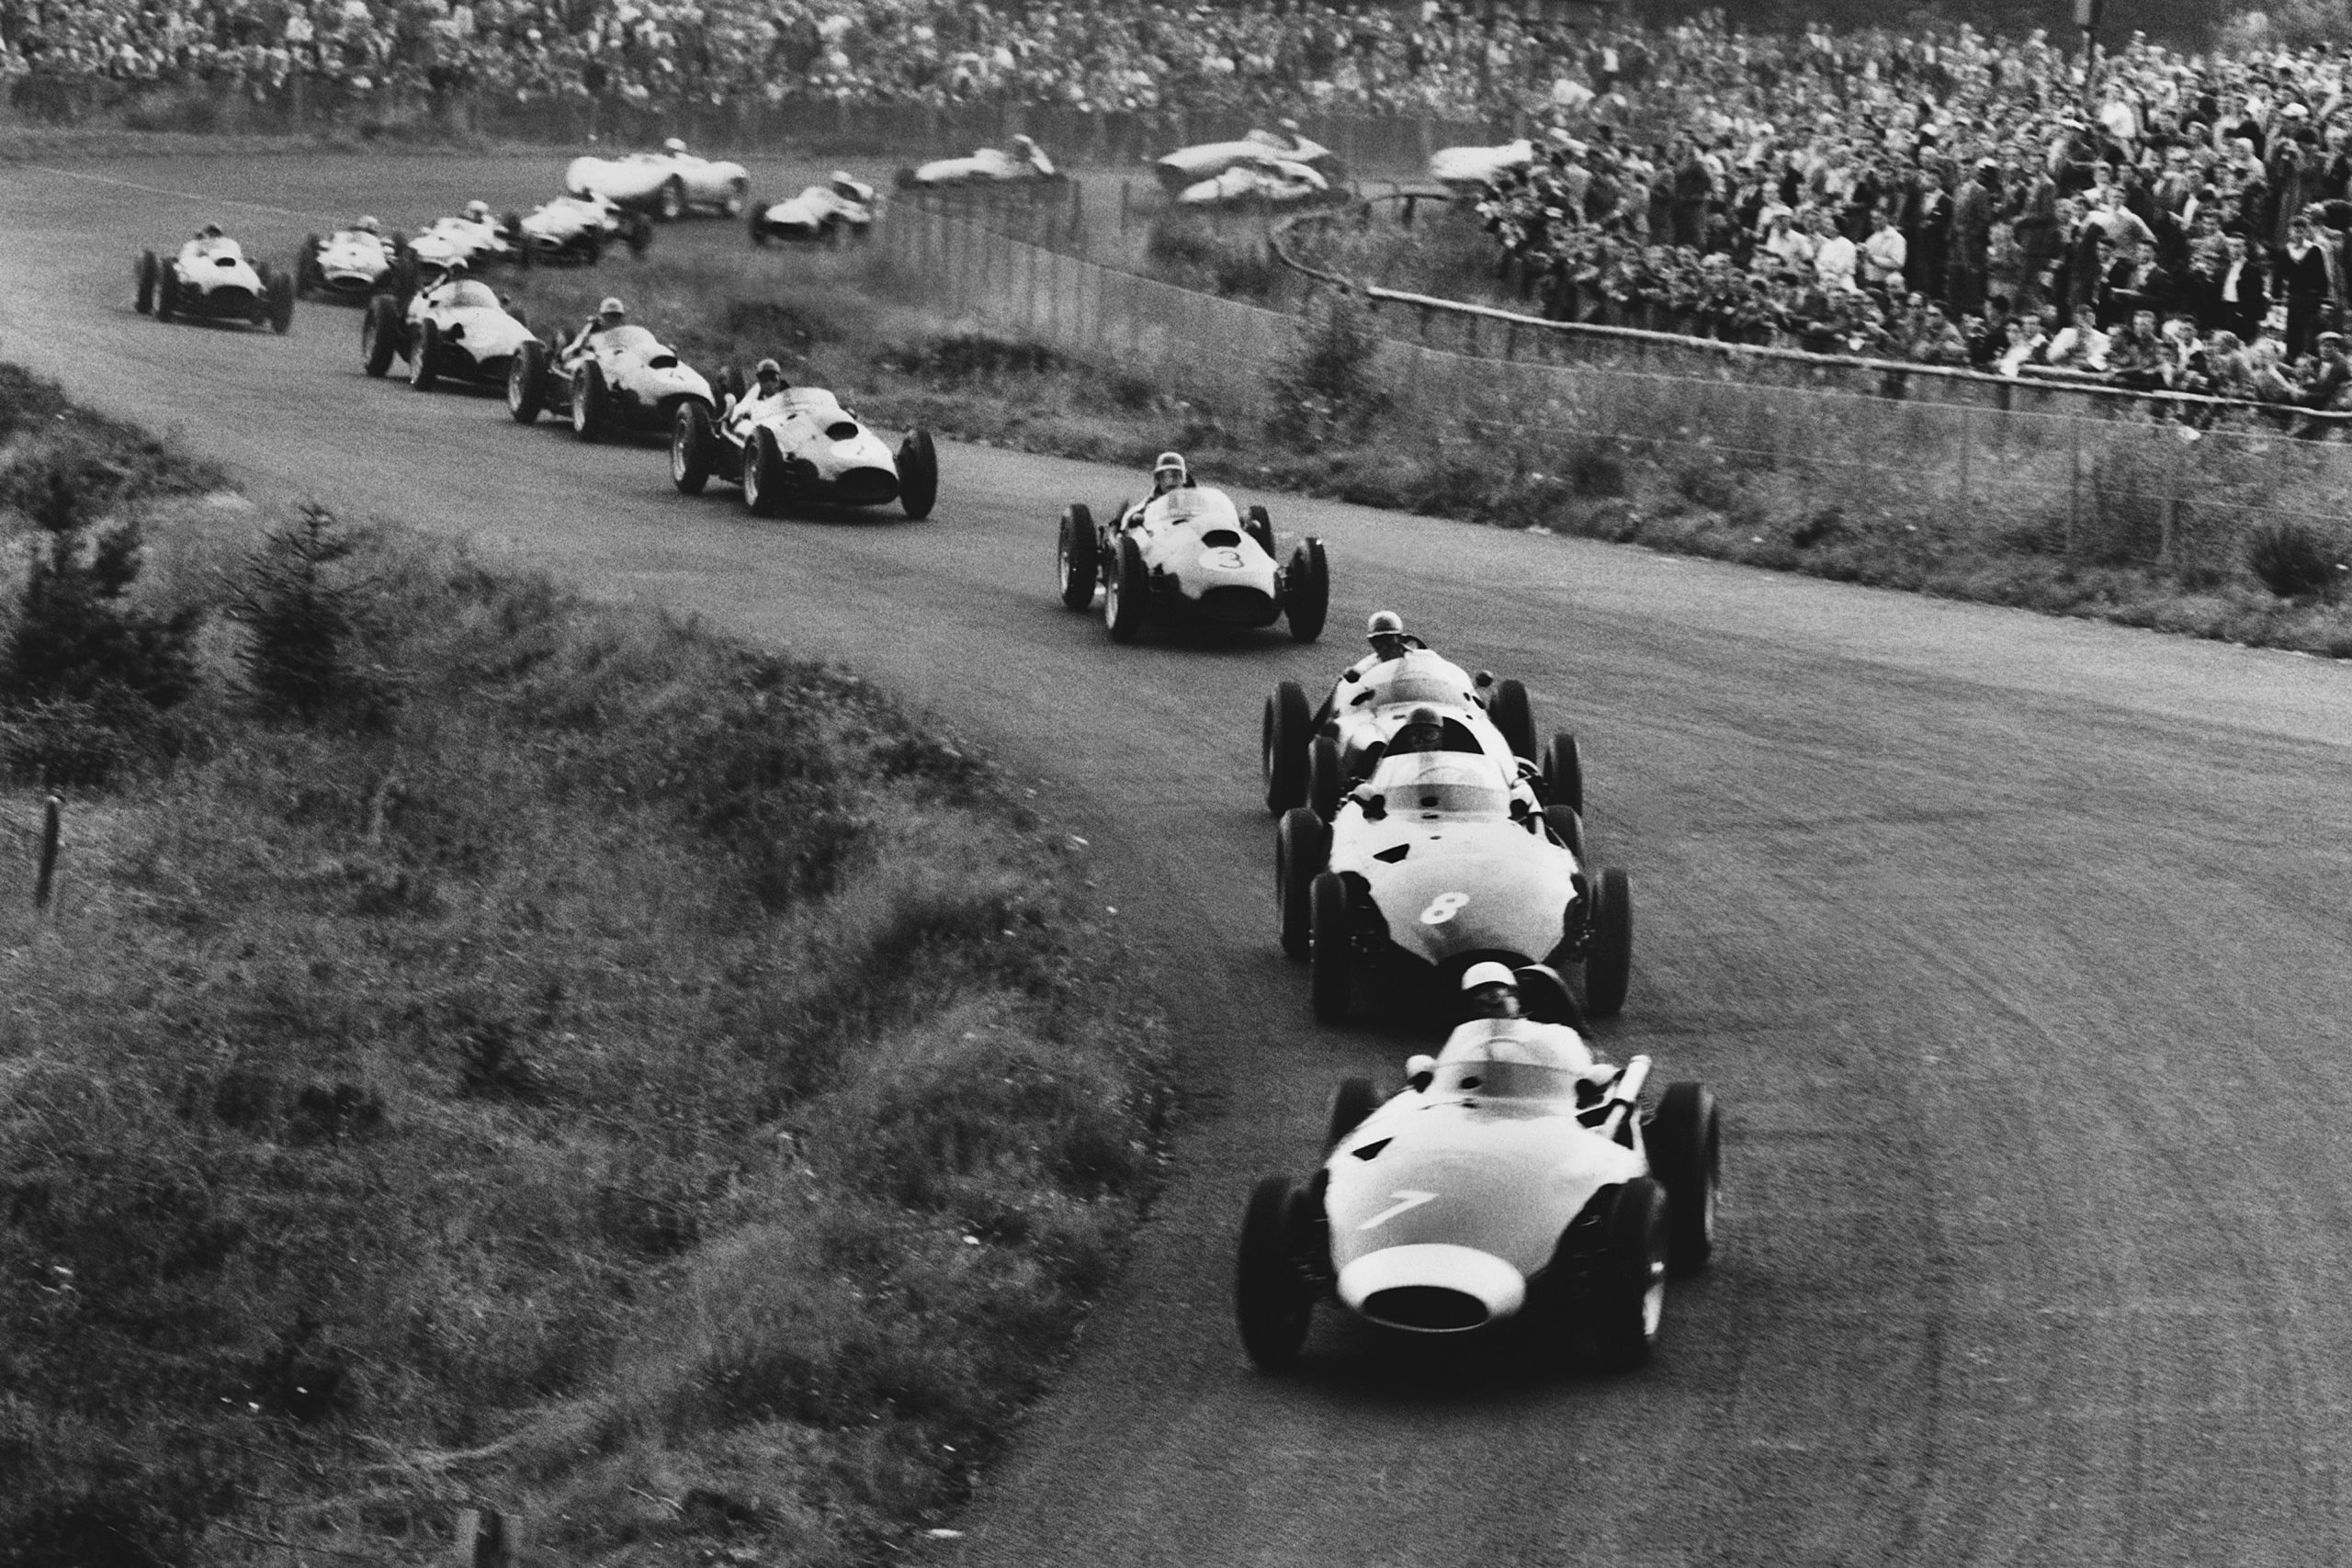 Stirling Moss driving a Vanwall leads Tony Brooks also in a Vanwall at the start of the race.